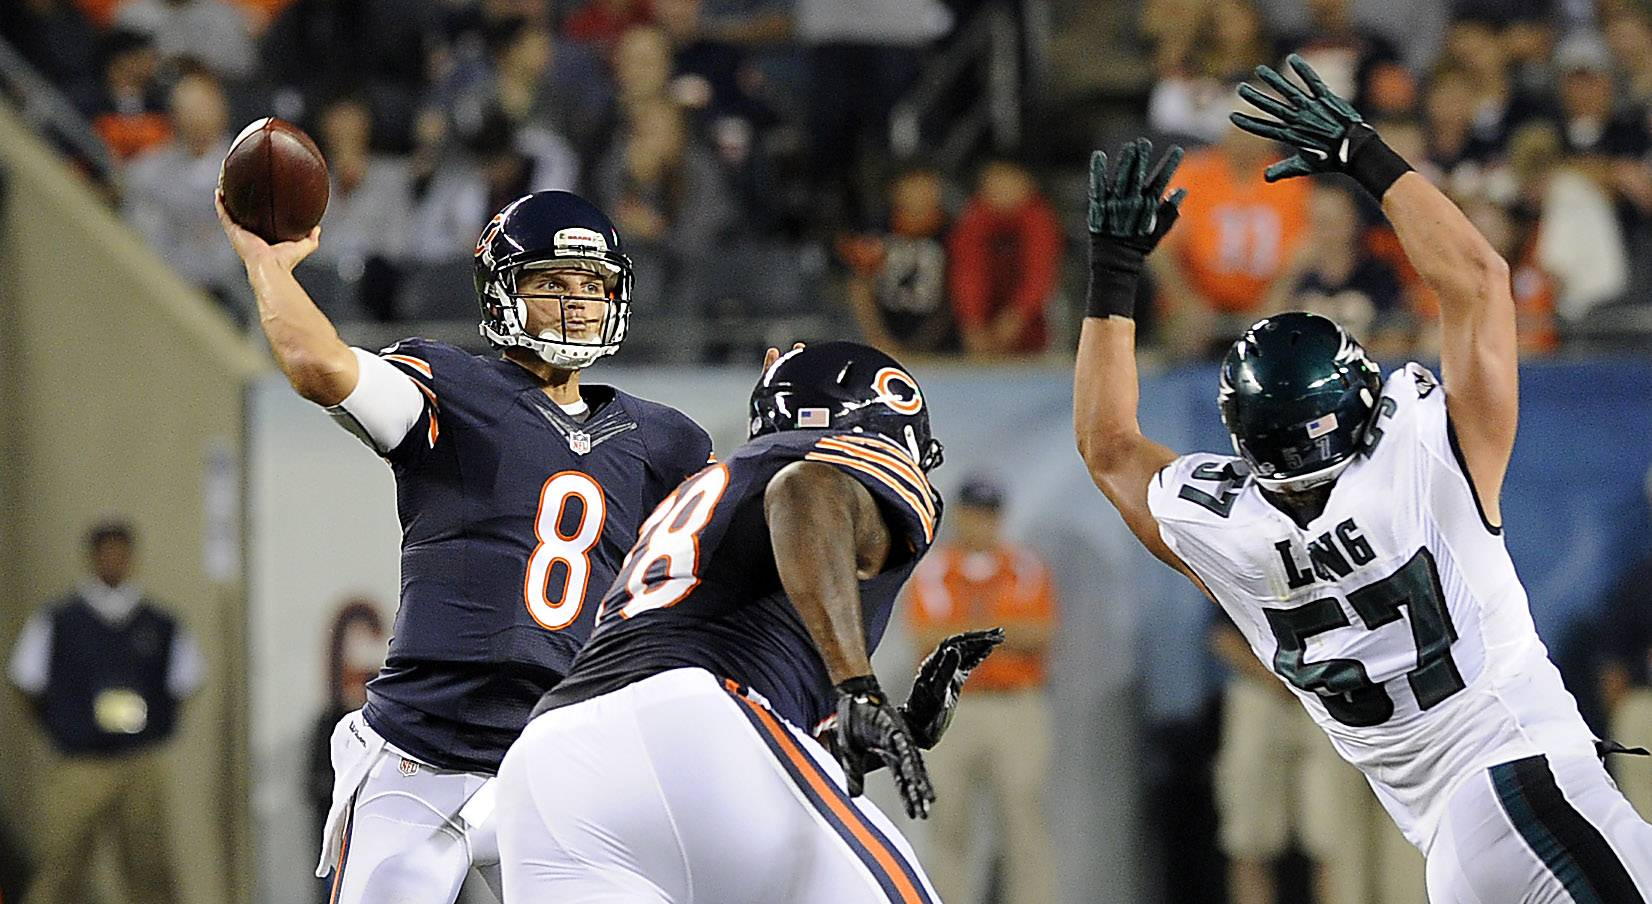 Chicago Bears quarterback Jimmy Clausen starts the third quarter with a pass as Philadelphia's Travis Long tries to block the pass.